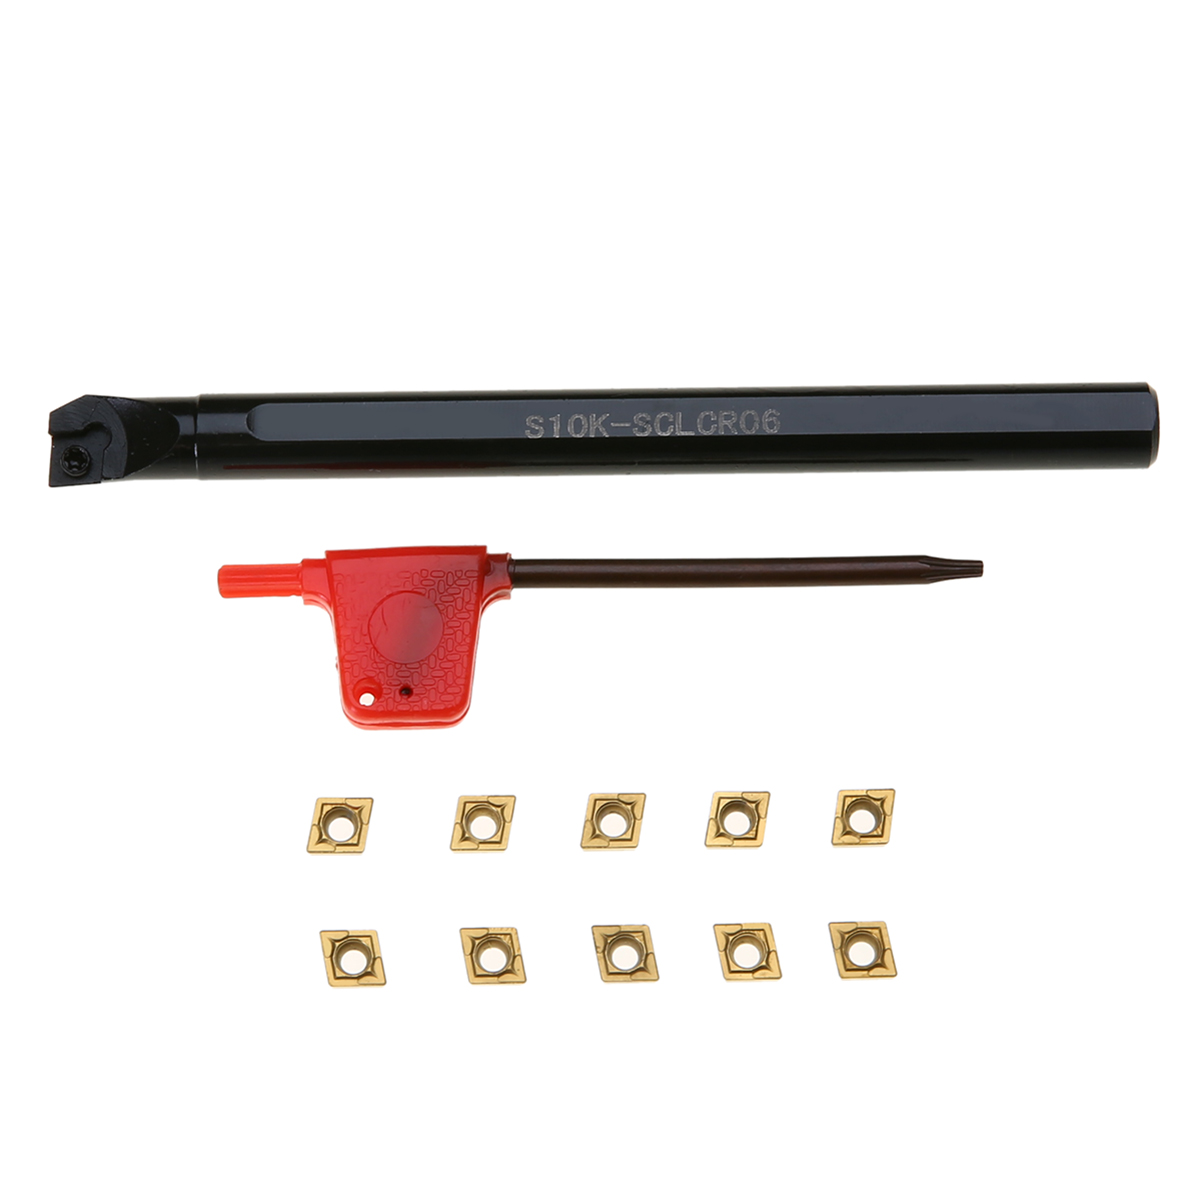 1pc S10K-SCLCR06 Boring Bar Tool Holder + 10pcs CCMT060204-HM Carbide Inserts + Wrench For Lathe Turning Tool